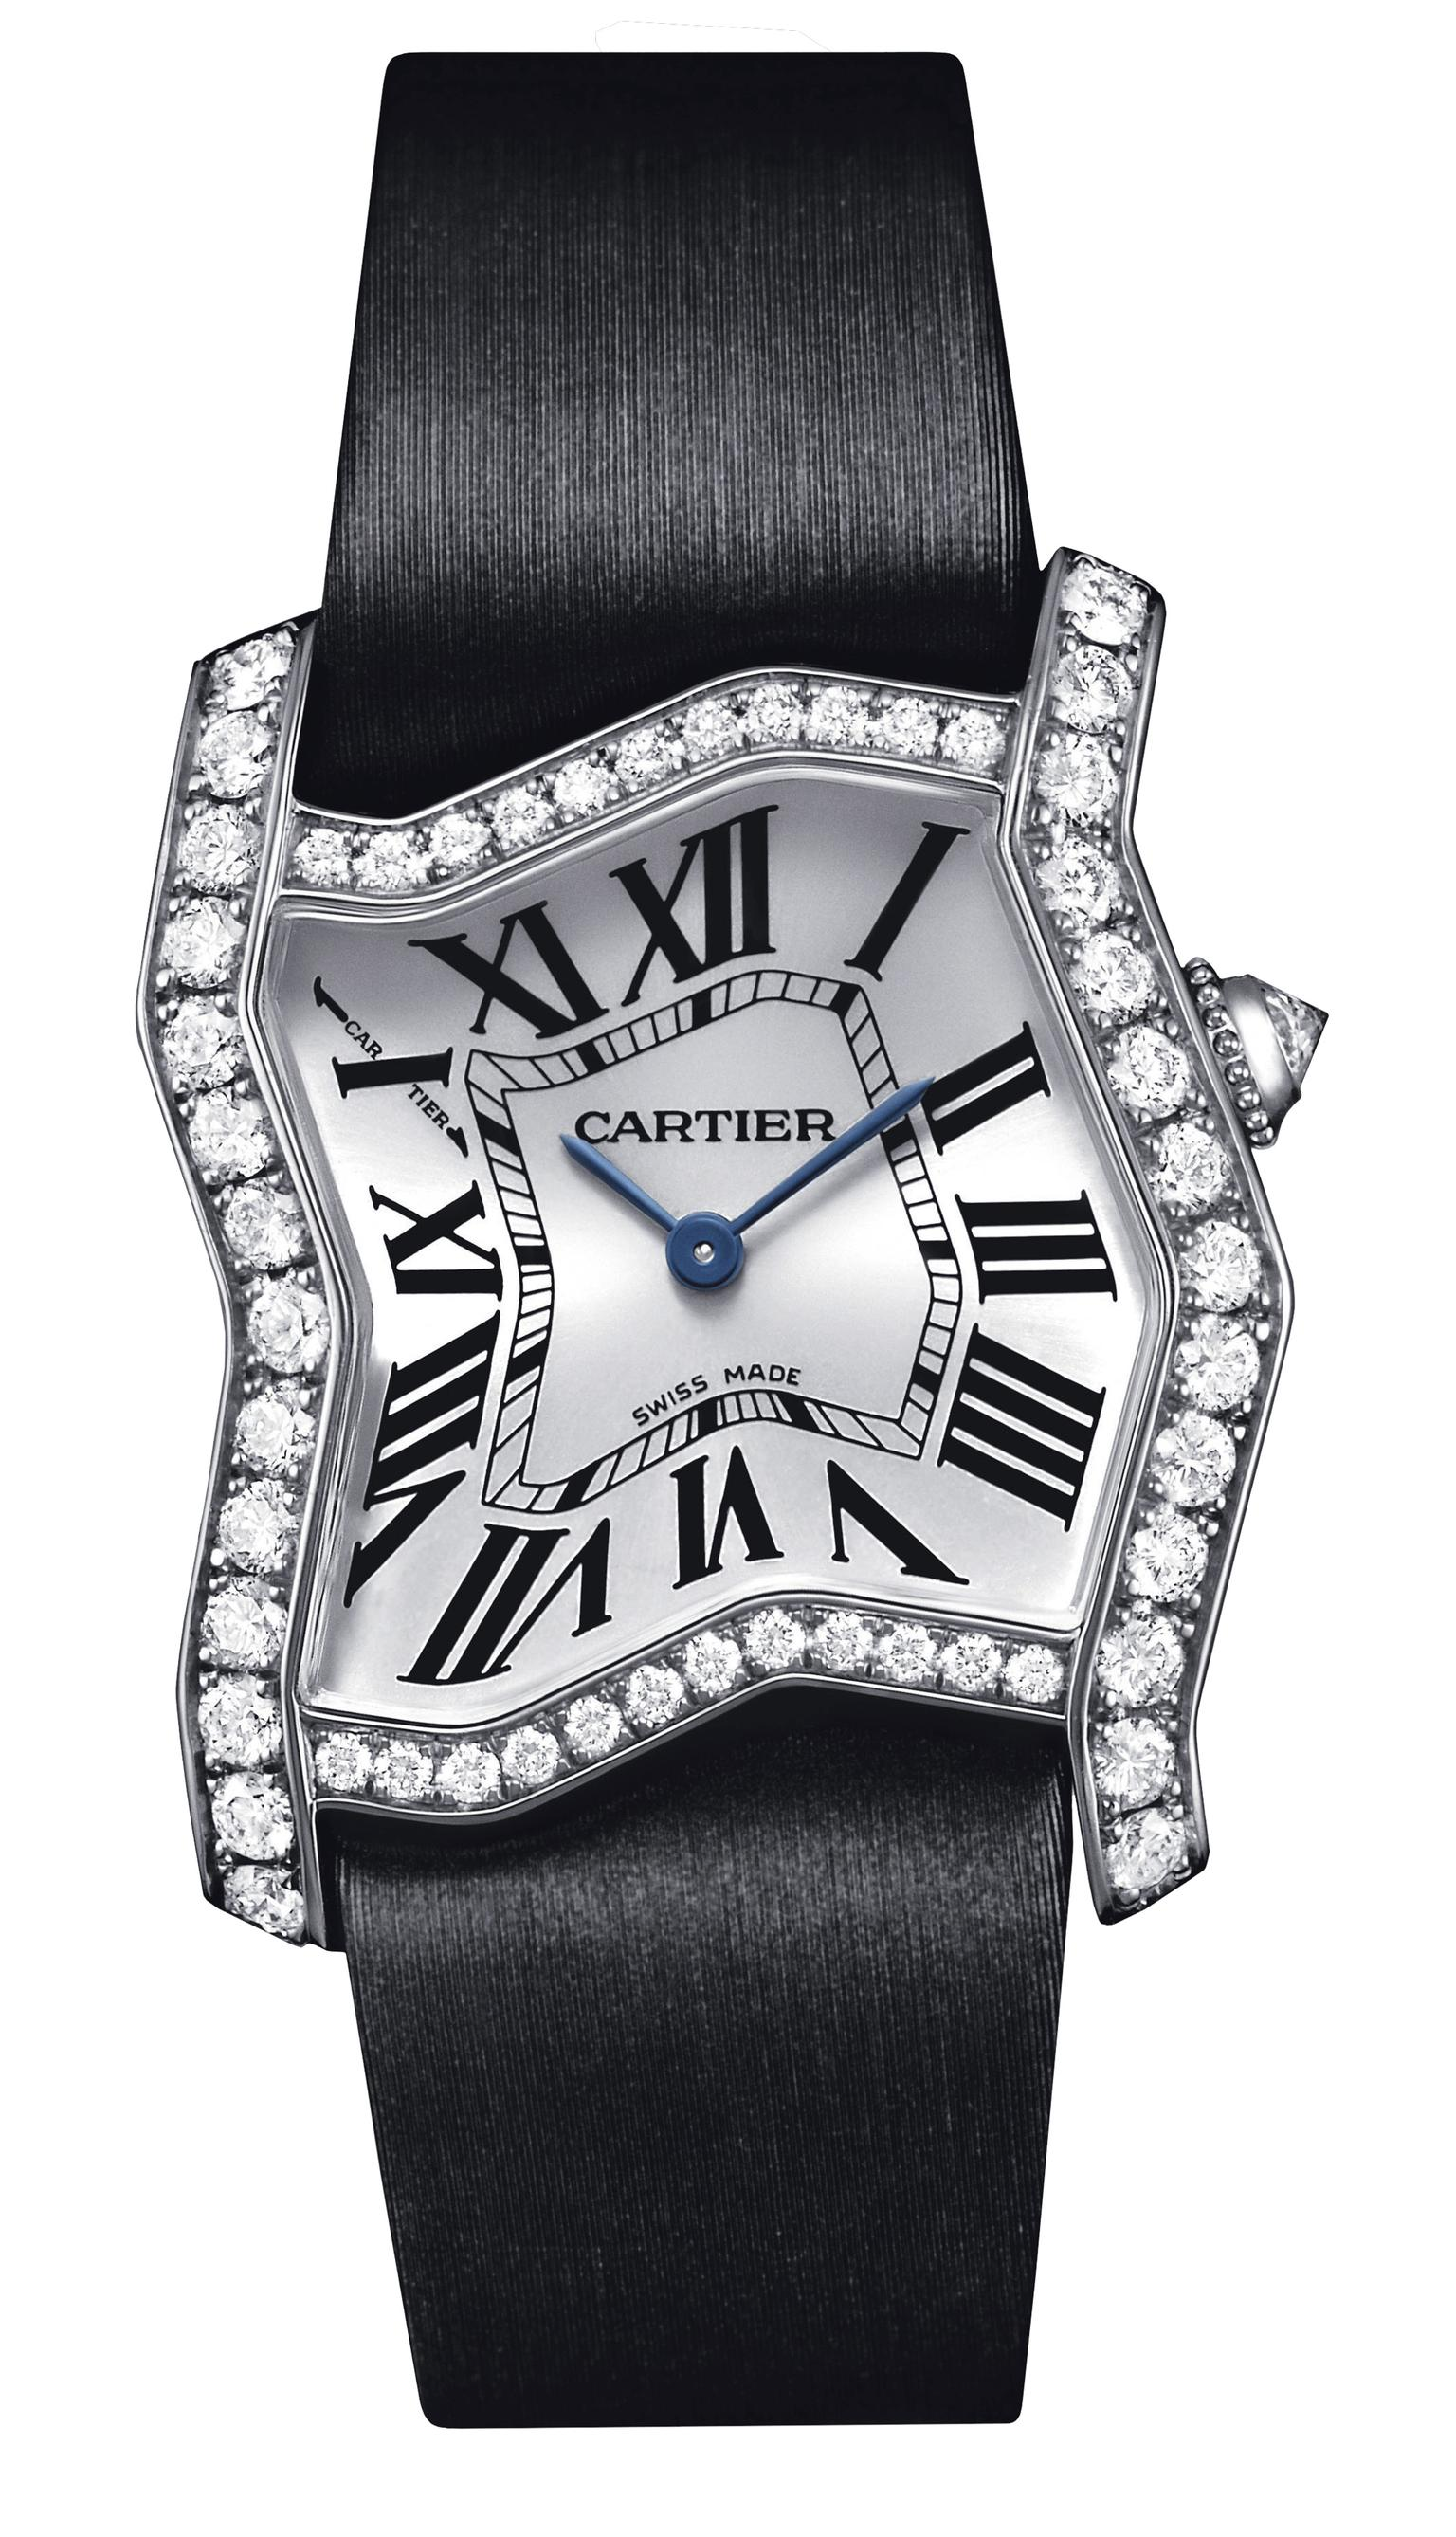 Tank Folle white gold and diamond watch   Cartier   The Jewellery Editor Cartier Tank Folle watch in white gold and diamonds 20130404 Zoom